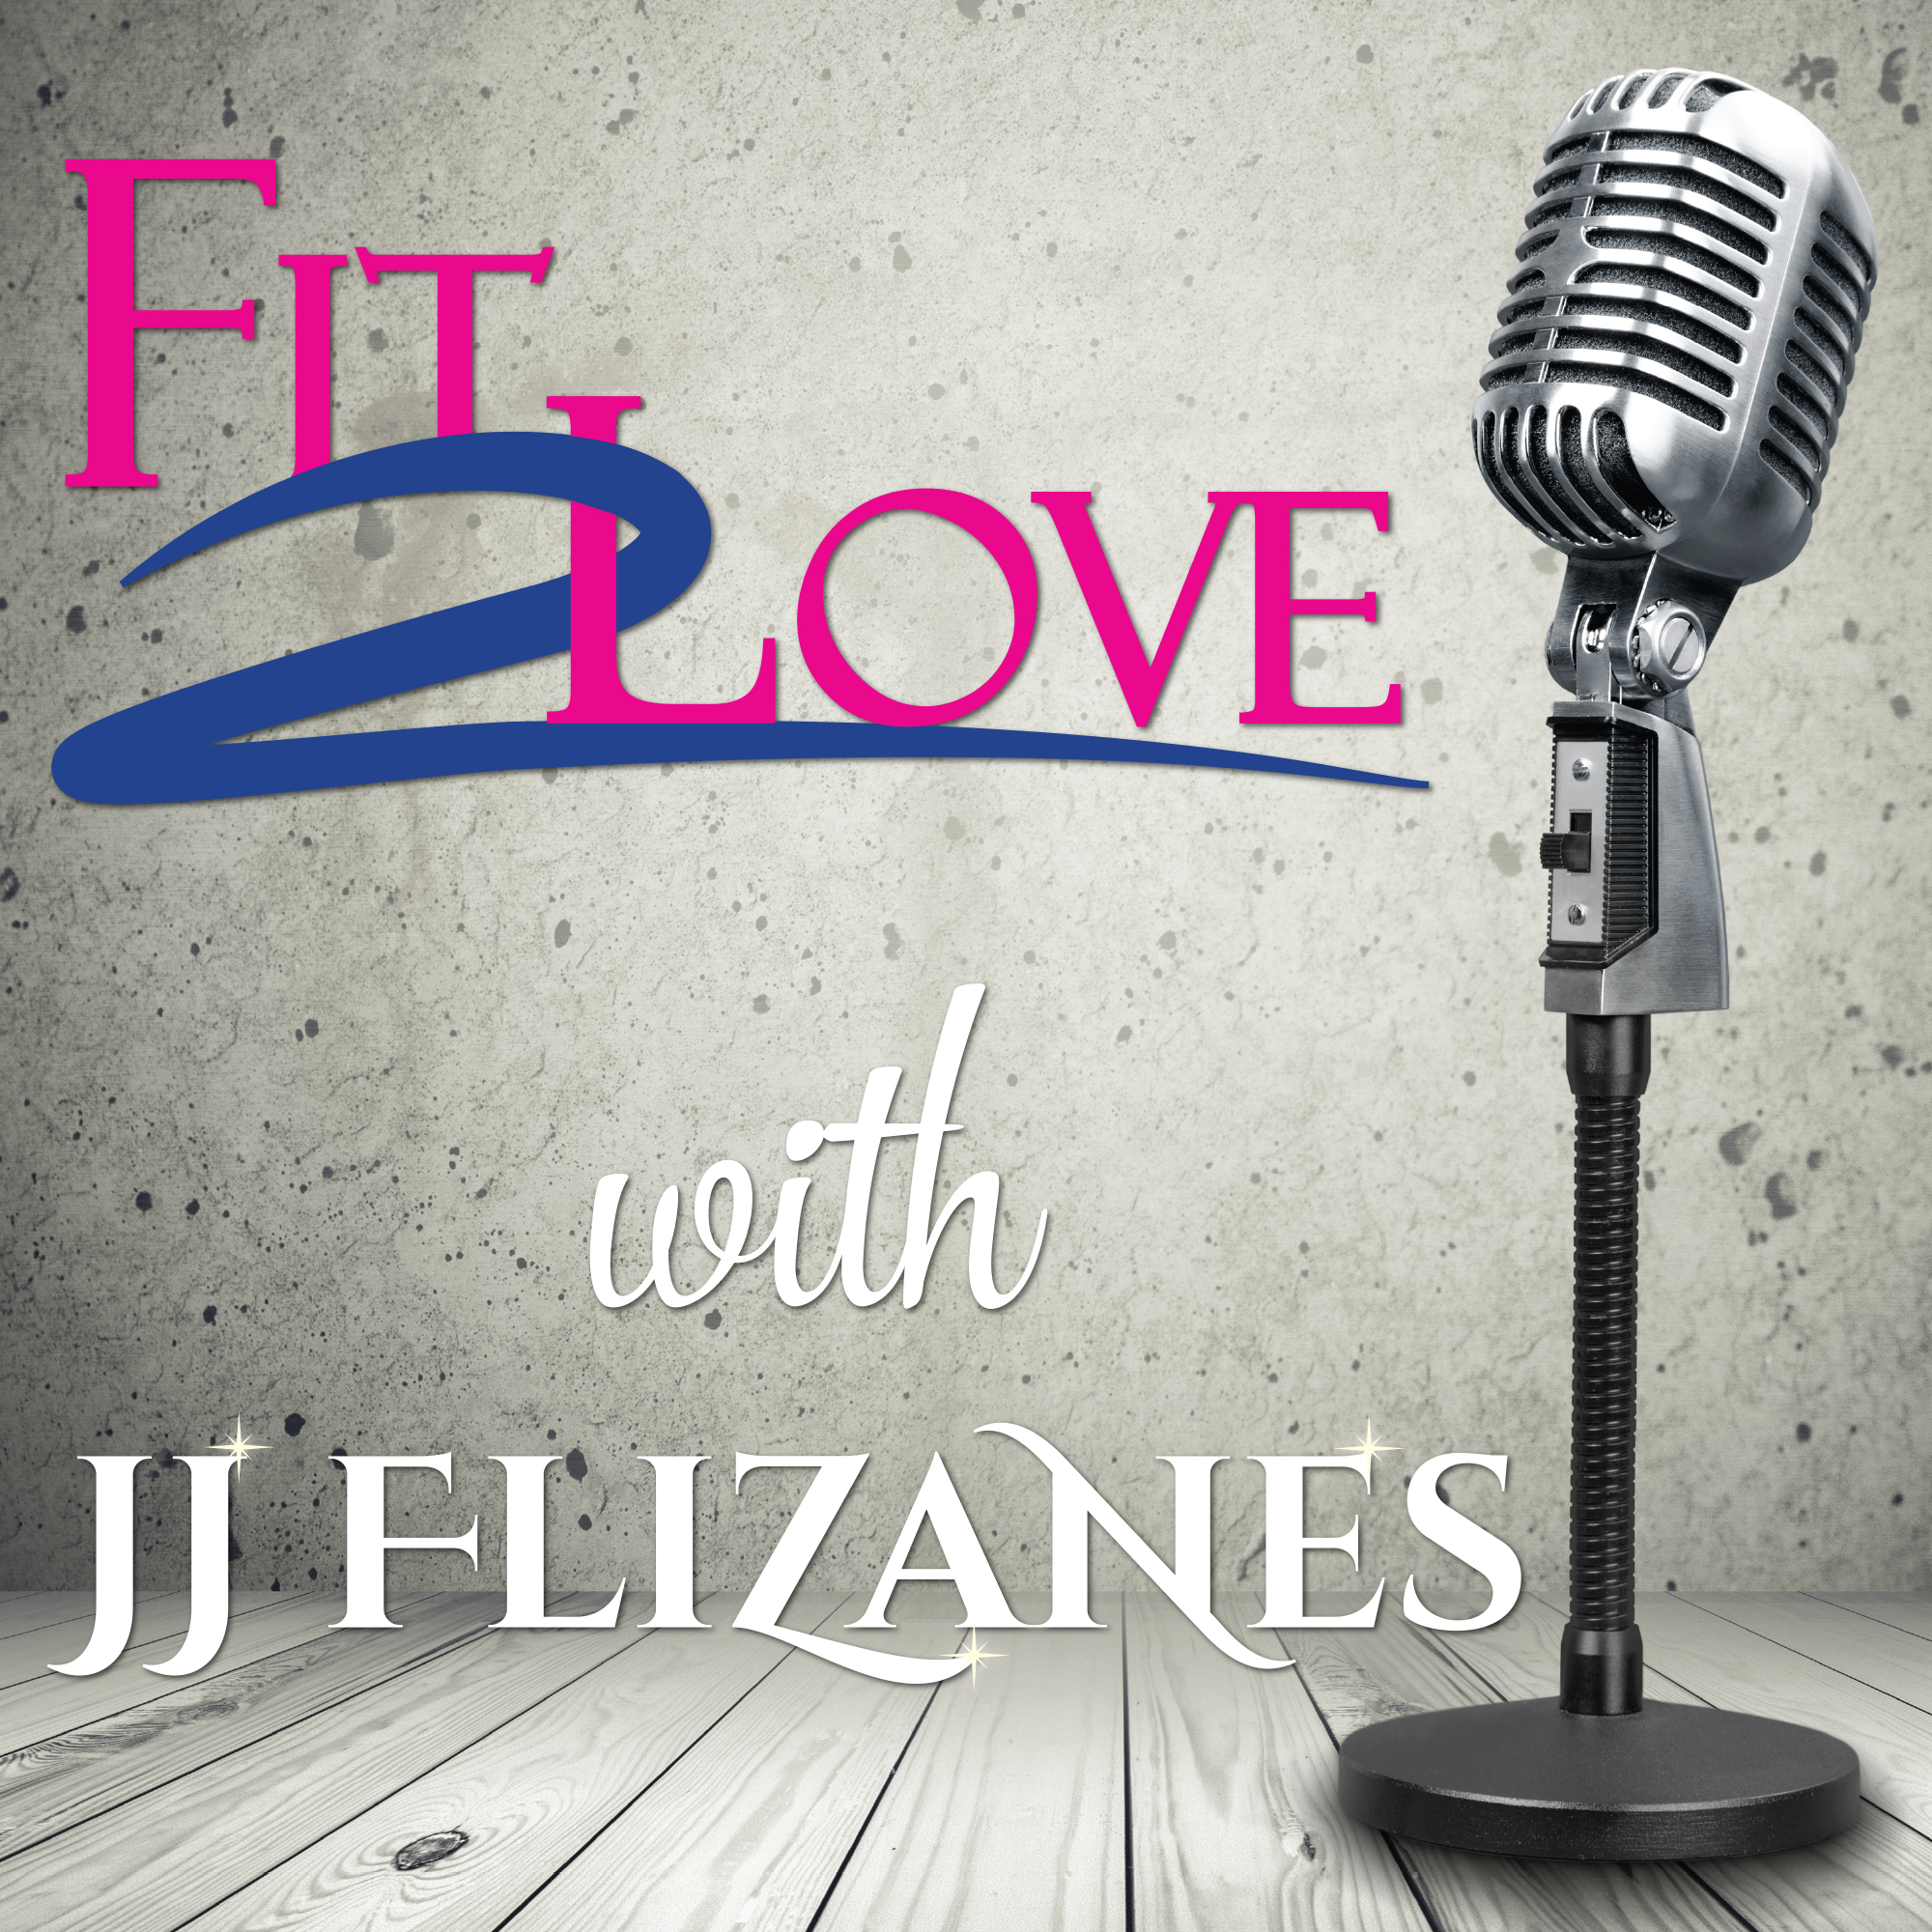 Fit 2 Love